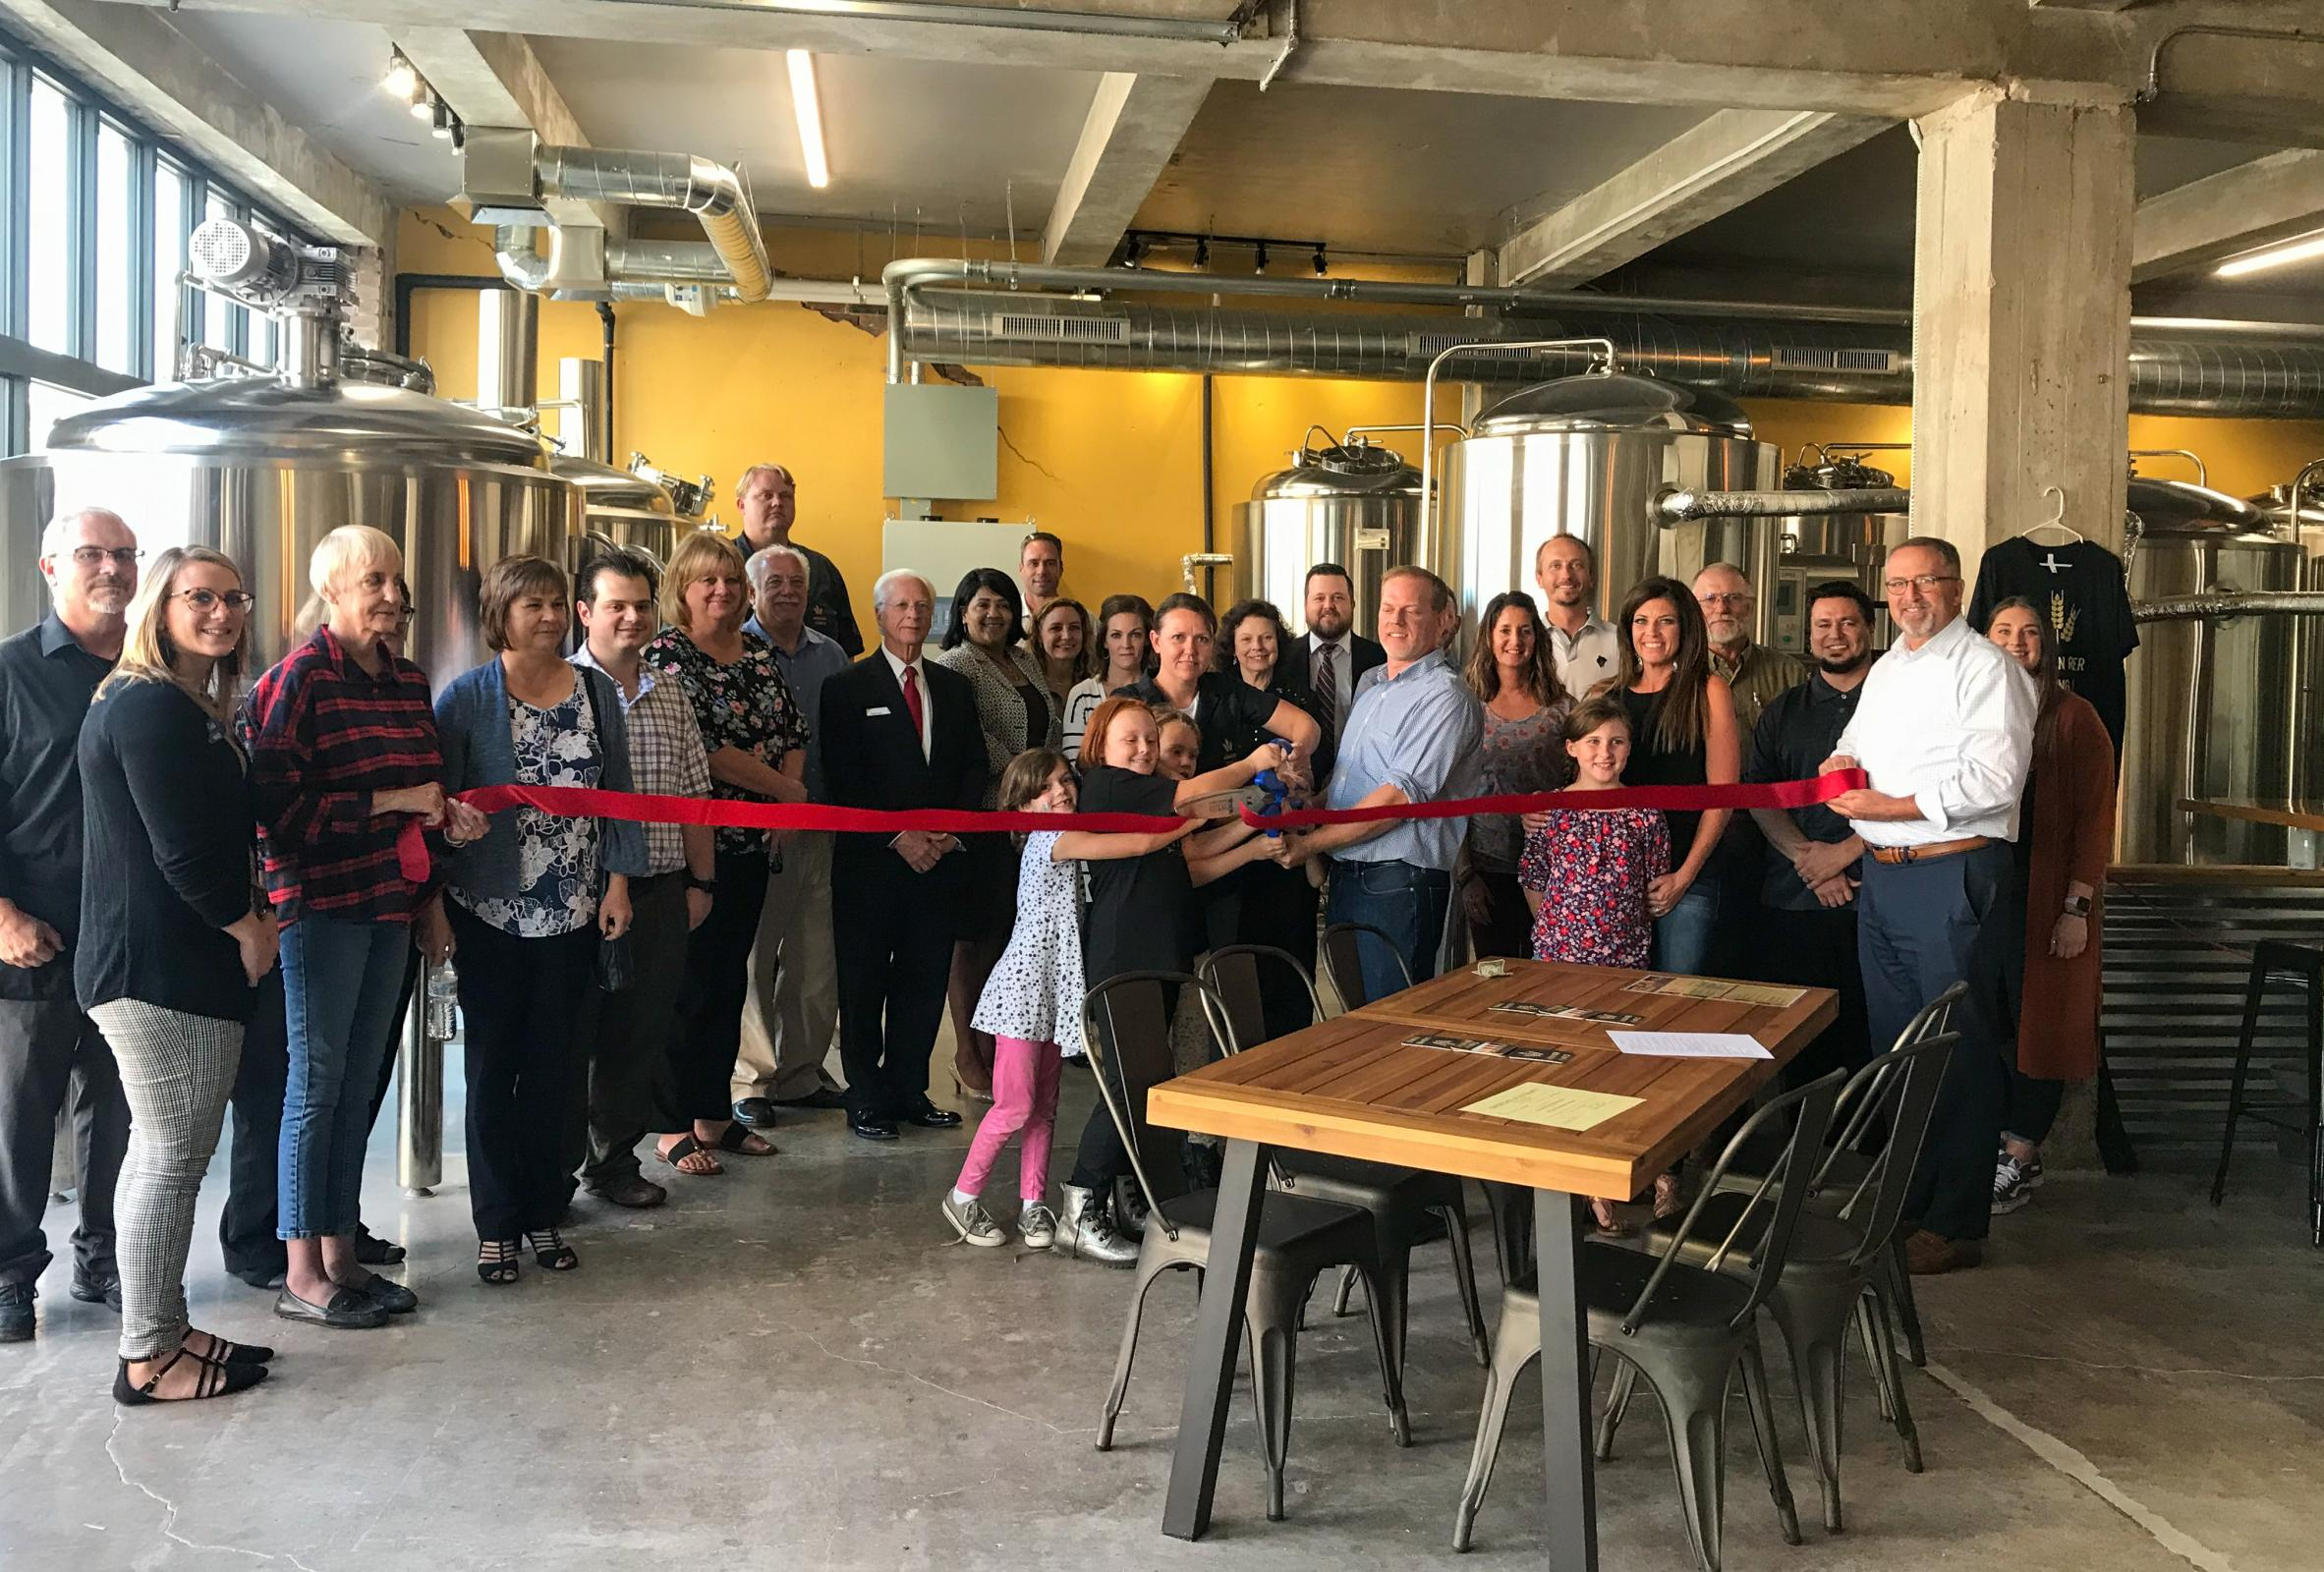 2019 Canadian River Brewing Co. Ribbon Cutting